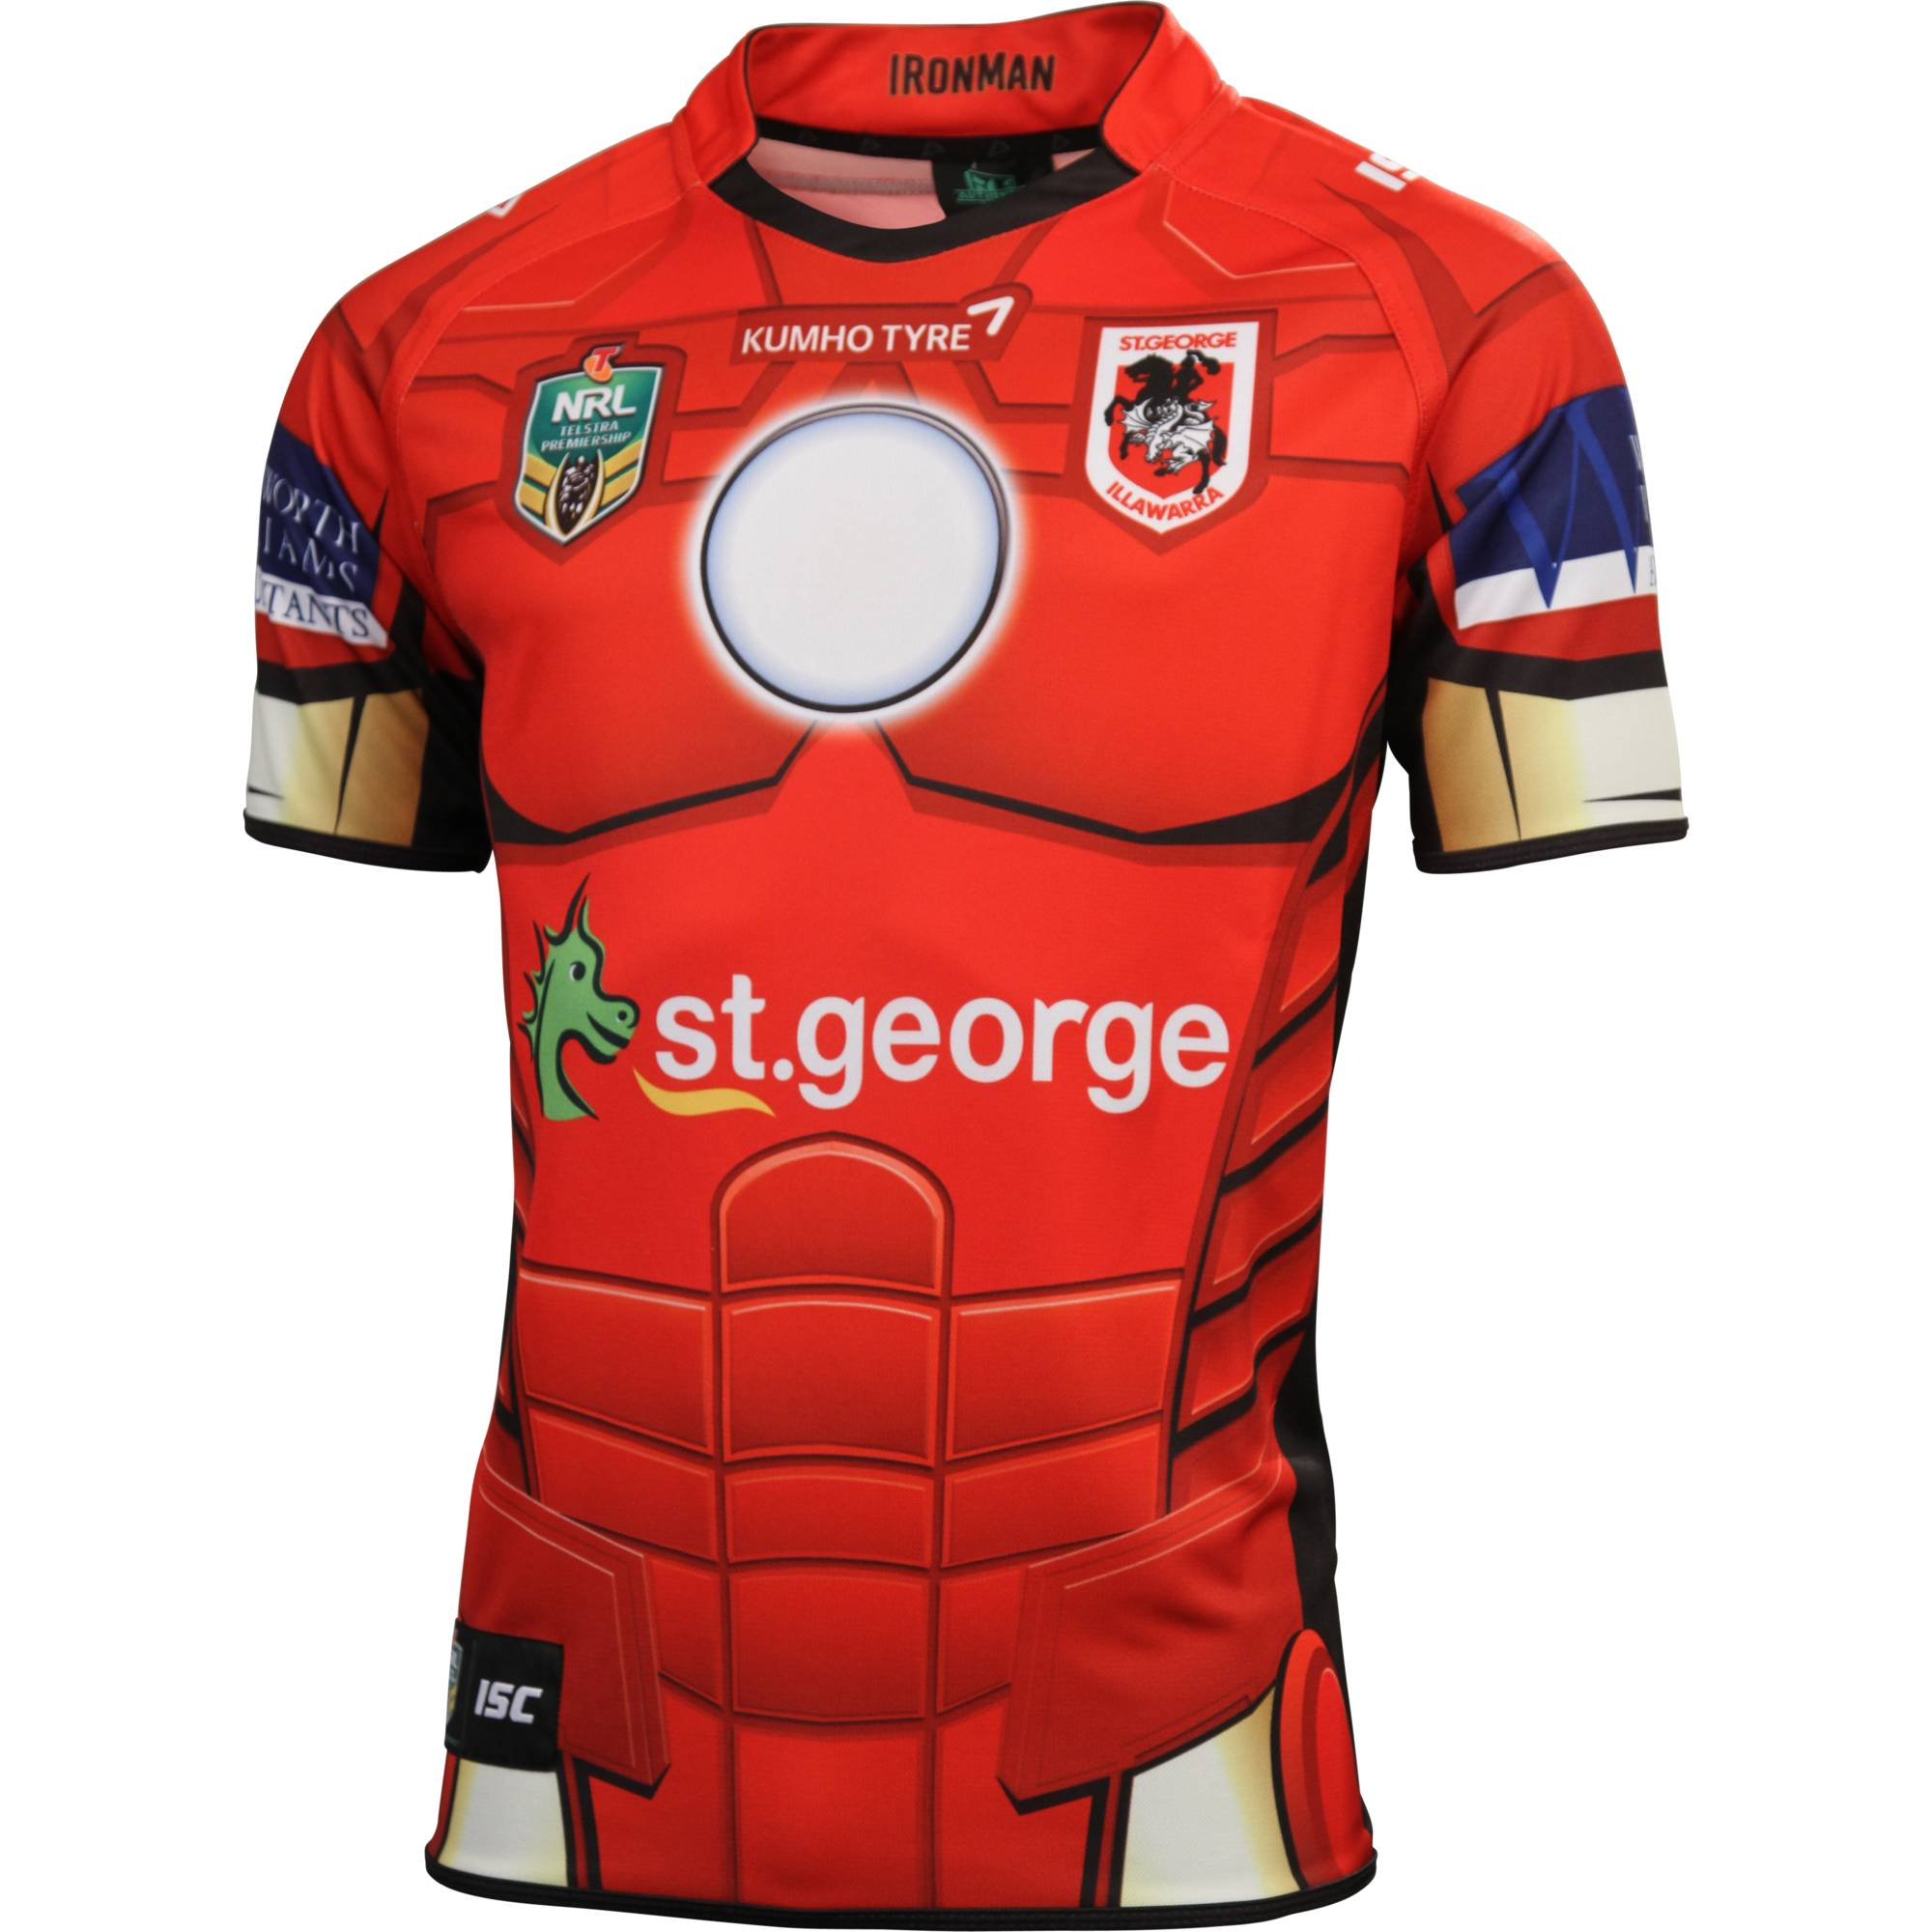 c1d25bee8e8 That's happening right now, courtesy of the National Rugby League of  Australia. Five different NRL teams are wearing kits (that's rugby and  soccer talk for ...